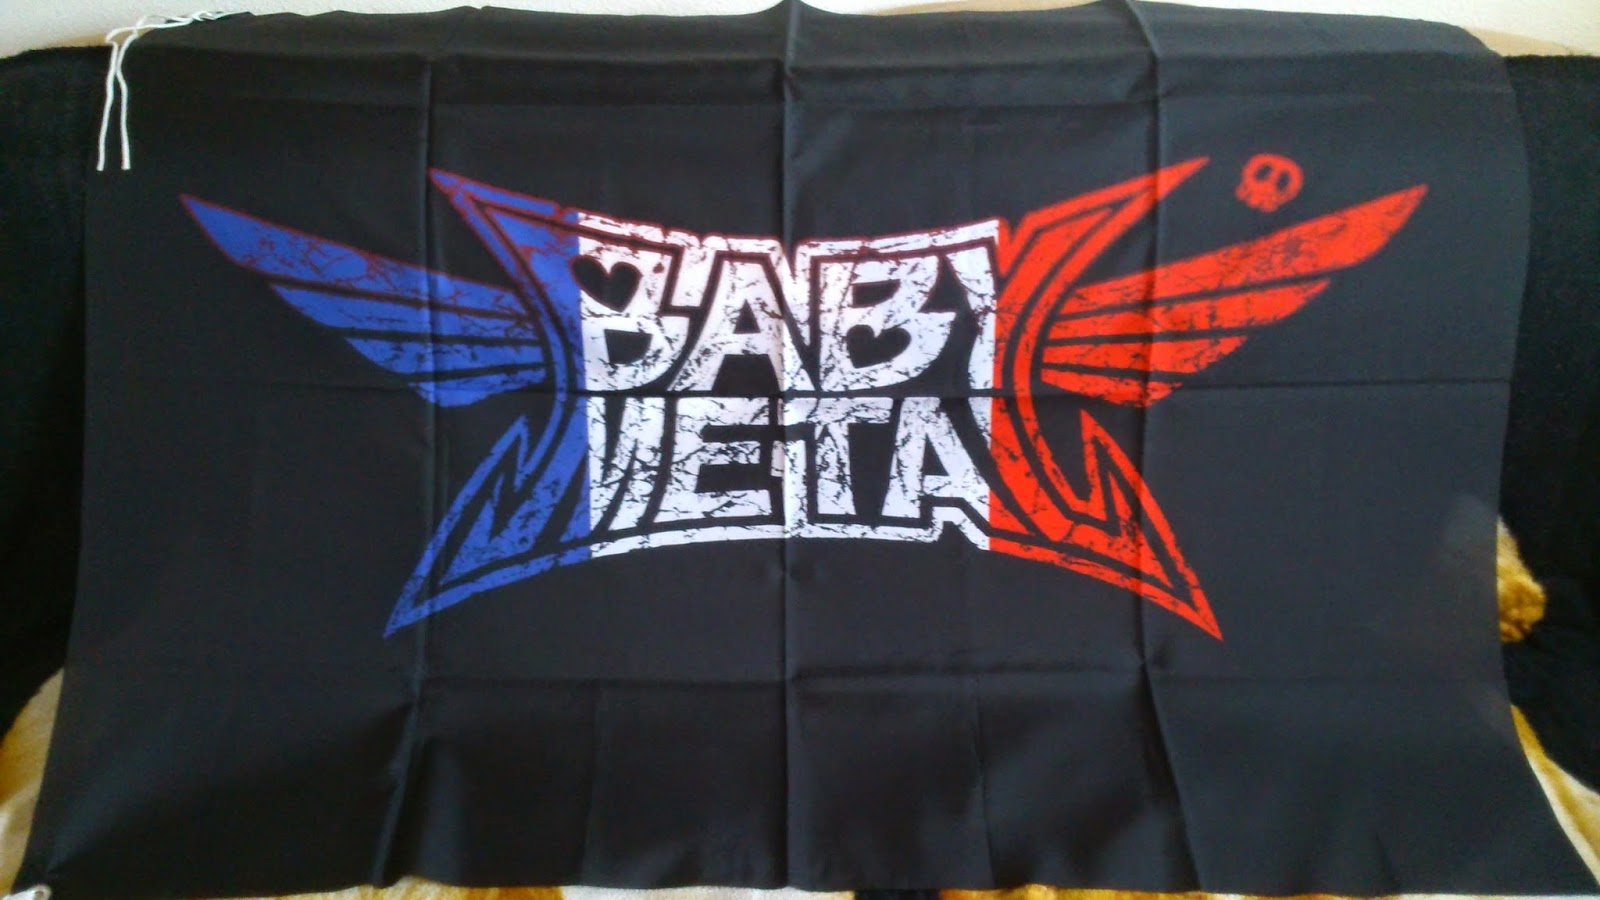 BABYMETAL WORLD TOUR 2014 - PARIS